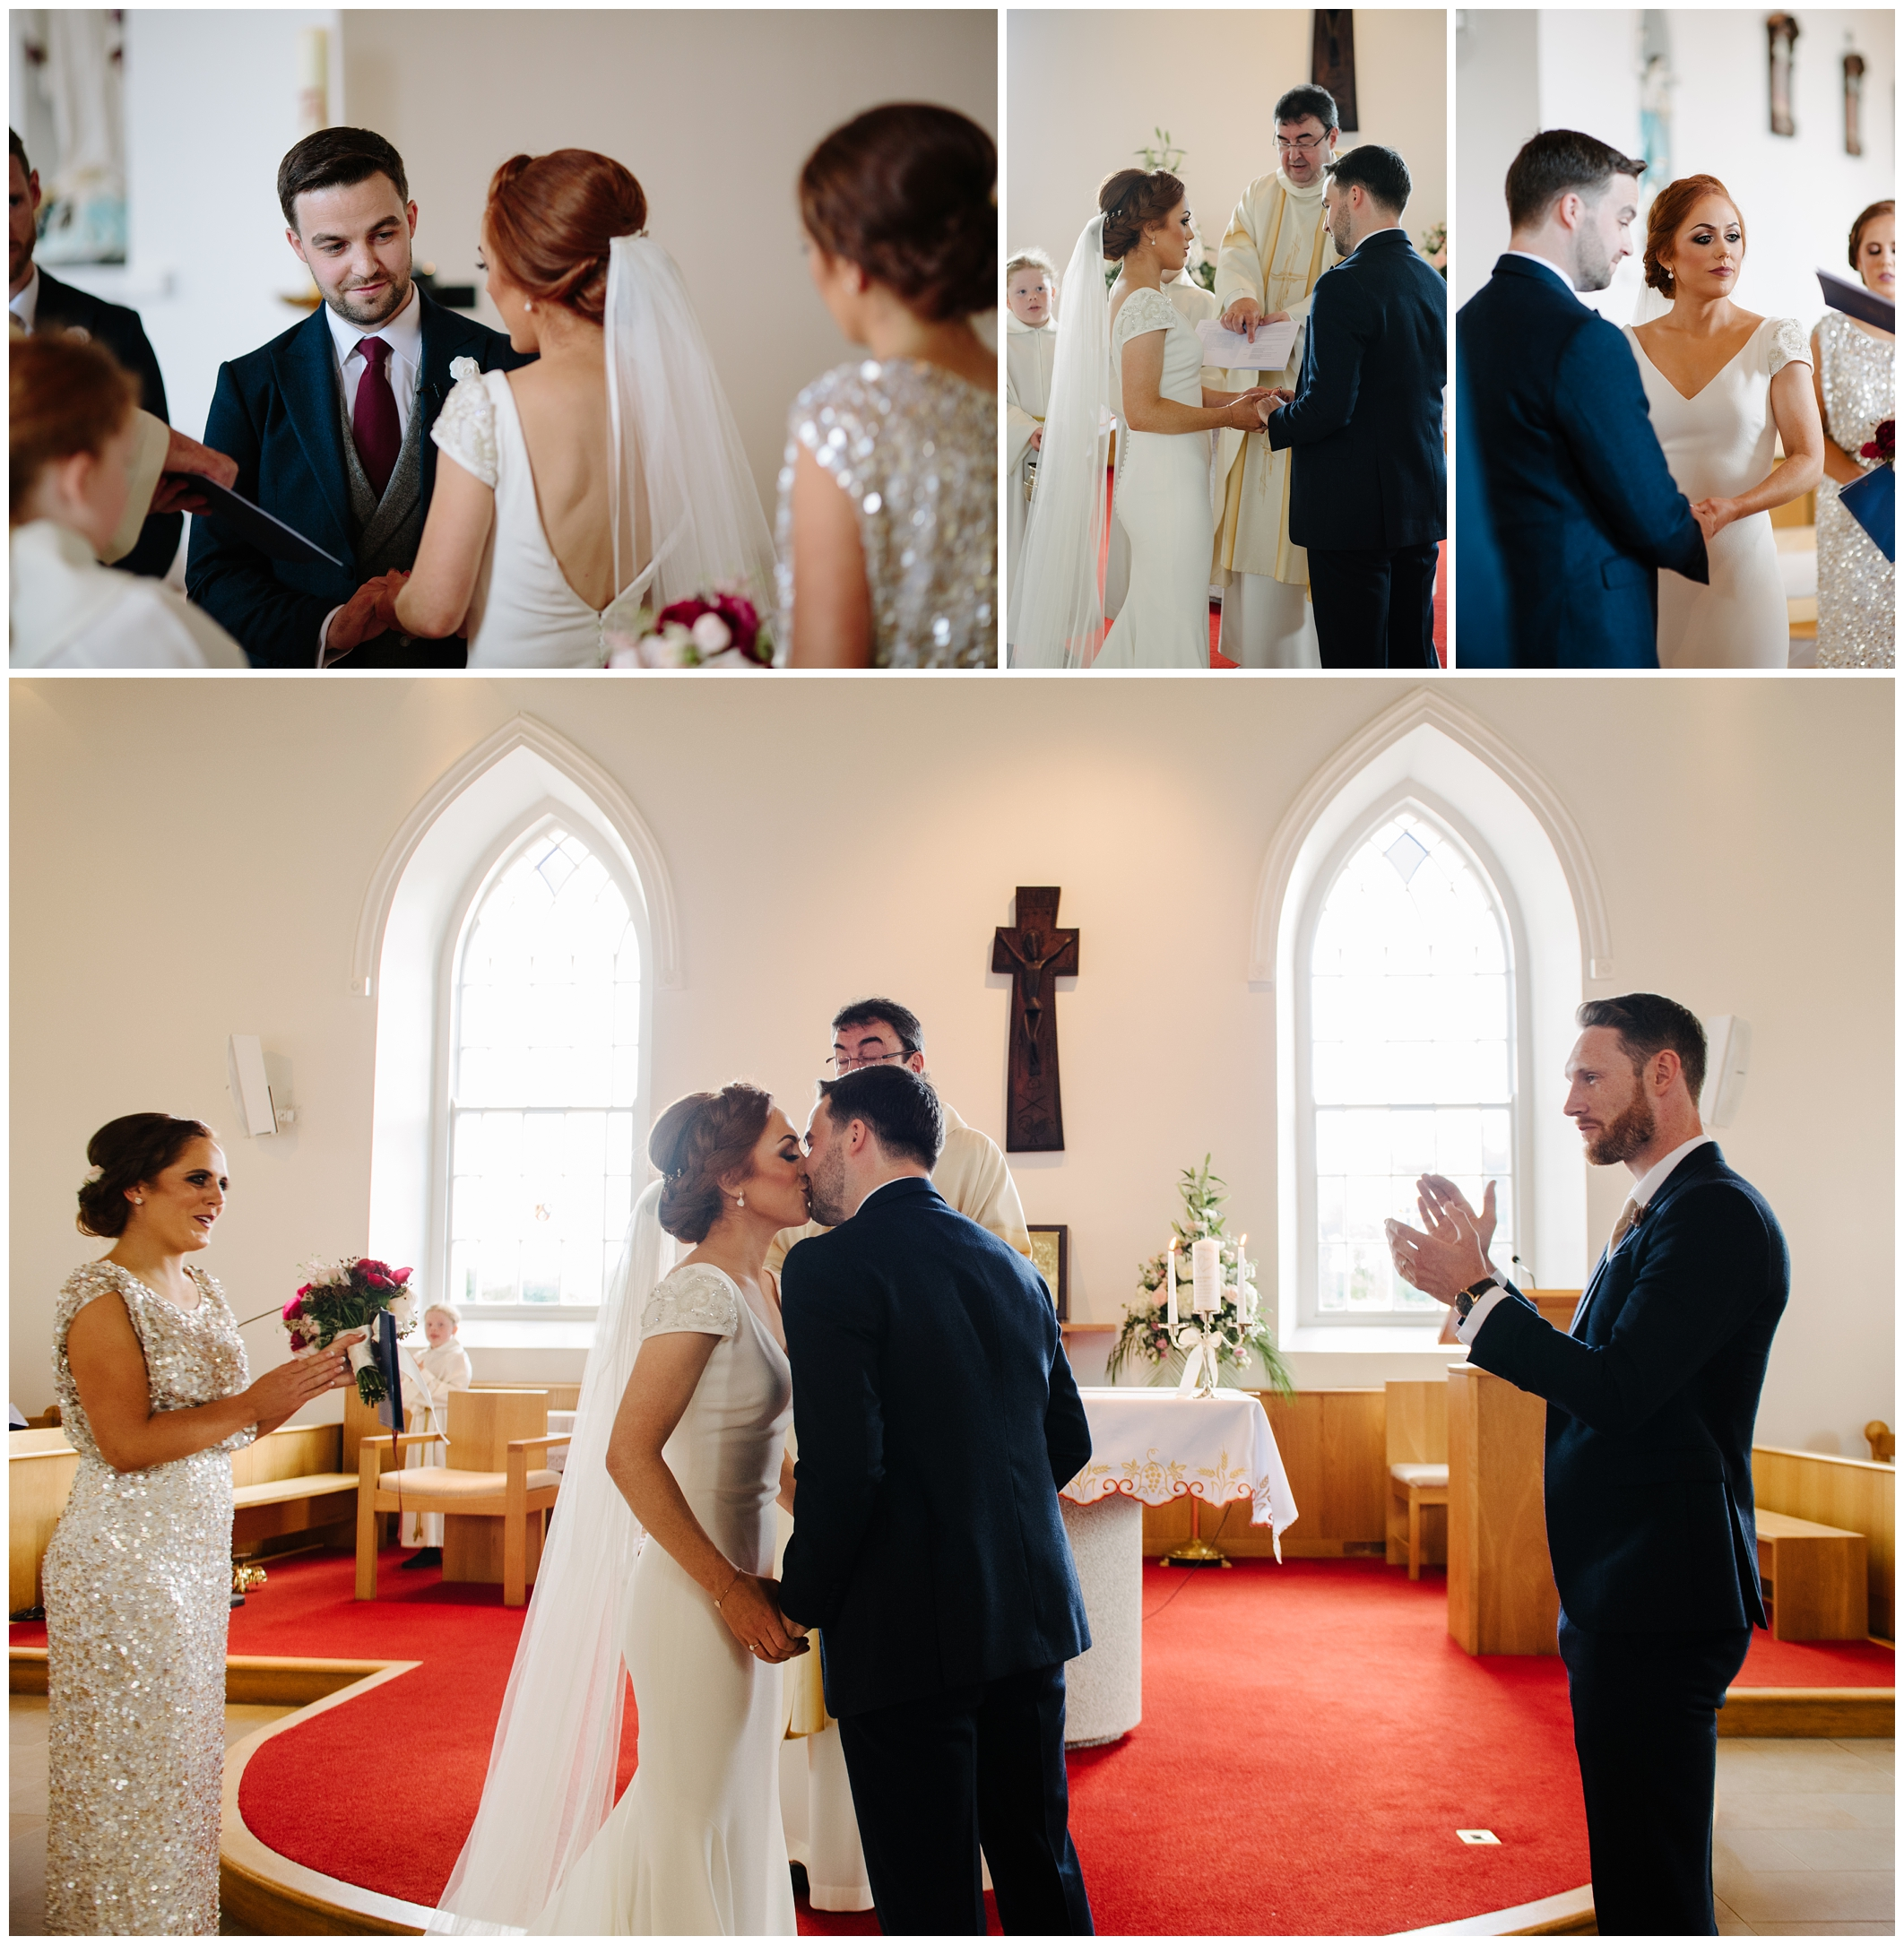 sinead_emmet_farnham_estate_wedding_jude_browne_photography_0069.jpg